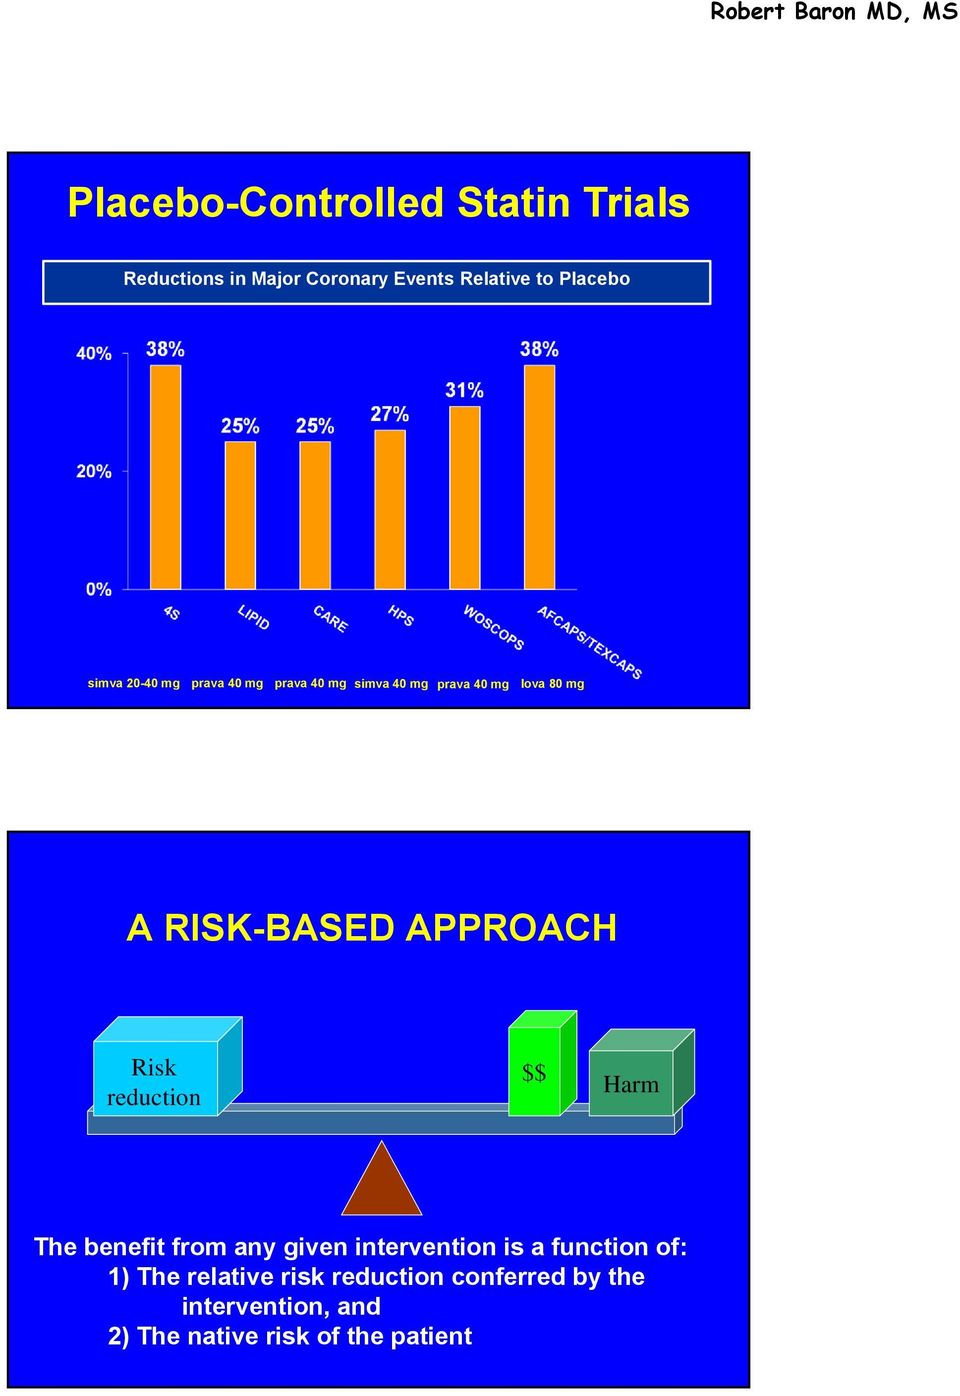 APPROACH Risk reduction $$ Harm The benefit from any given intervention is a function of: